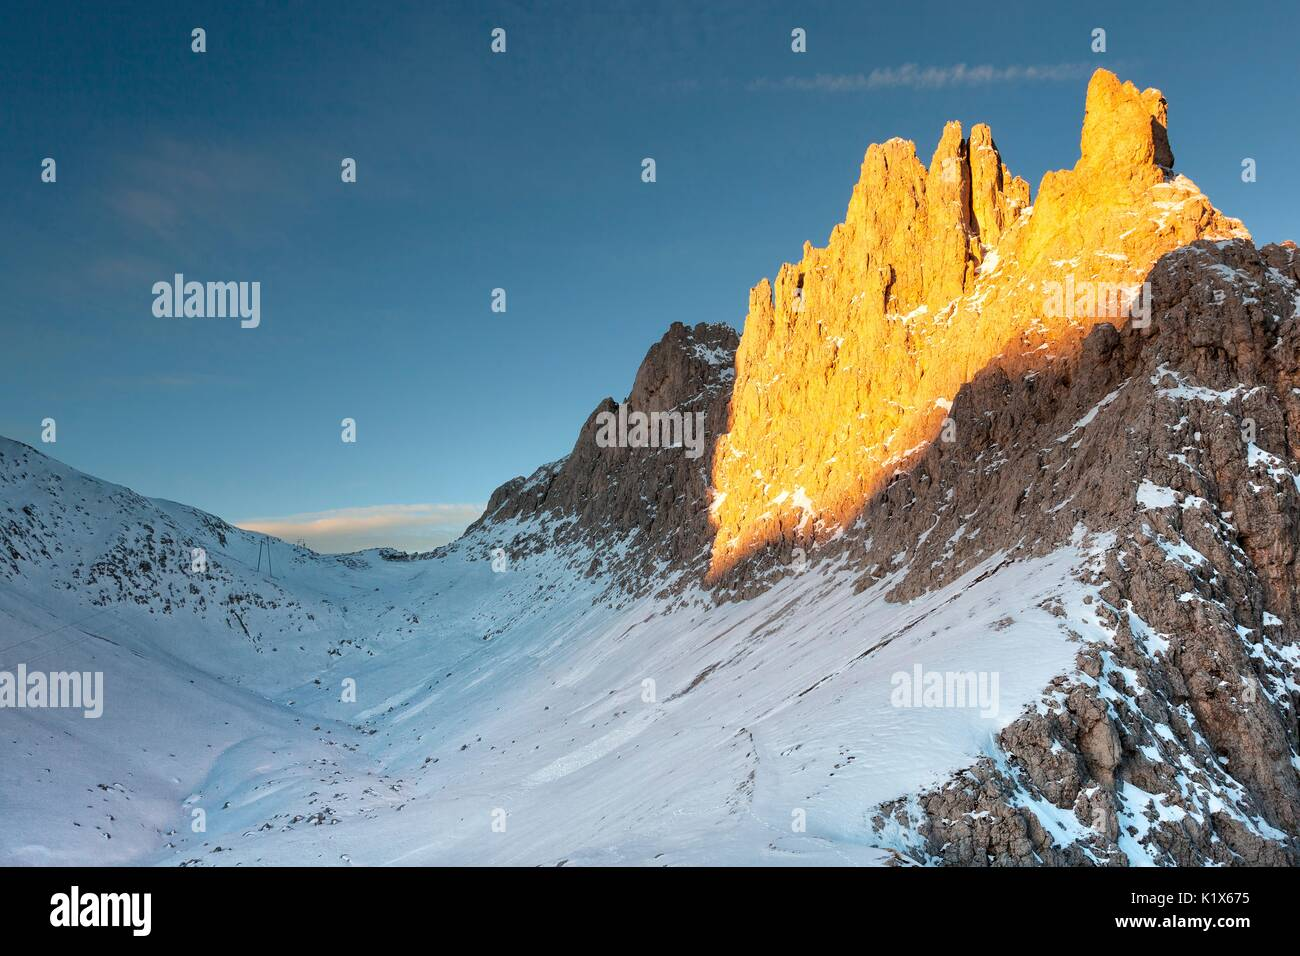 Santnerpass and Croda of King Laurin (Croda di Re Laurino) in a sunlit morning in early winter. Snow covers the entire path to the Santner pass, Rosen - Stock Image